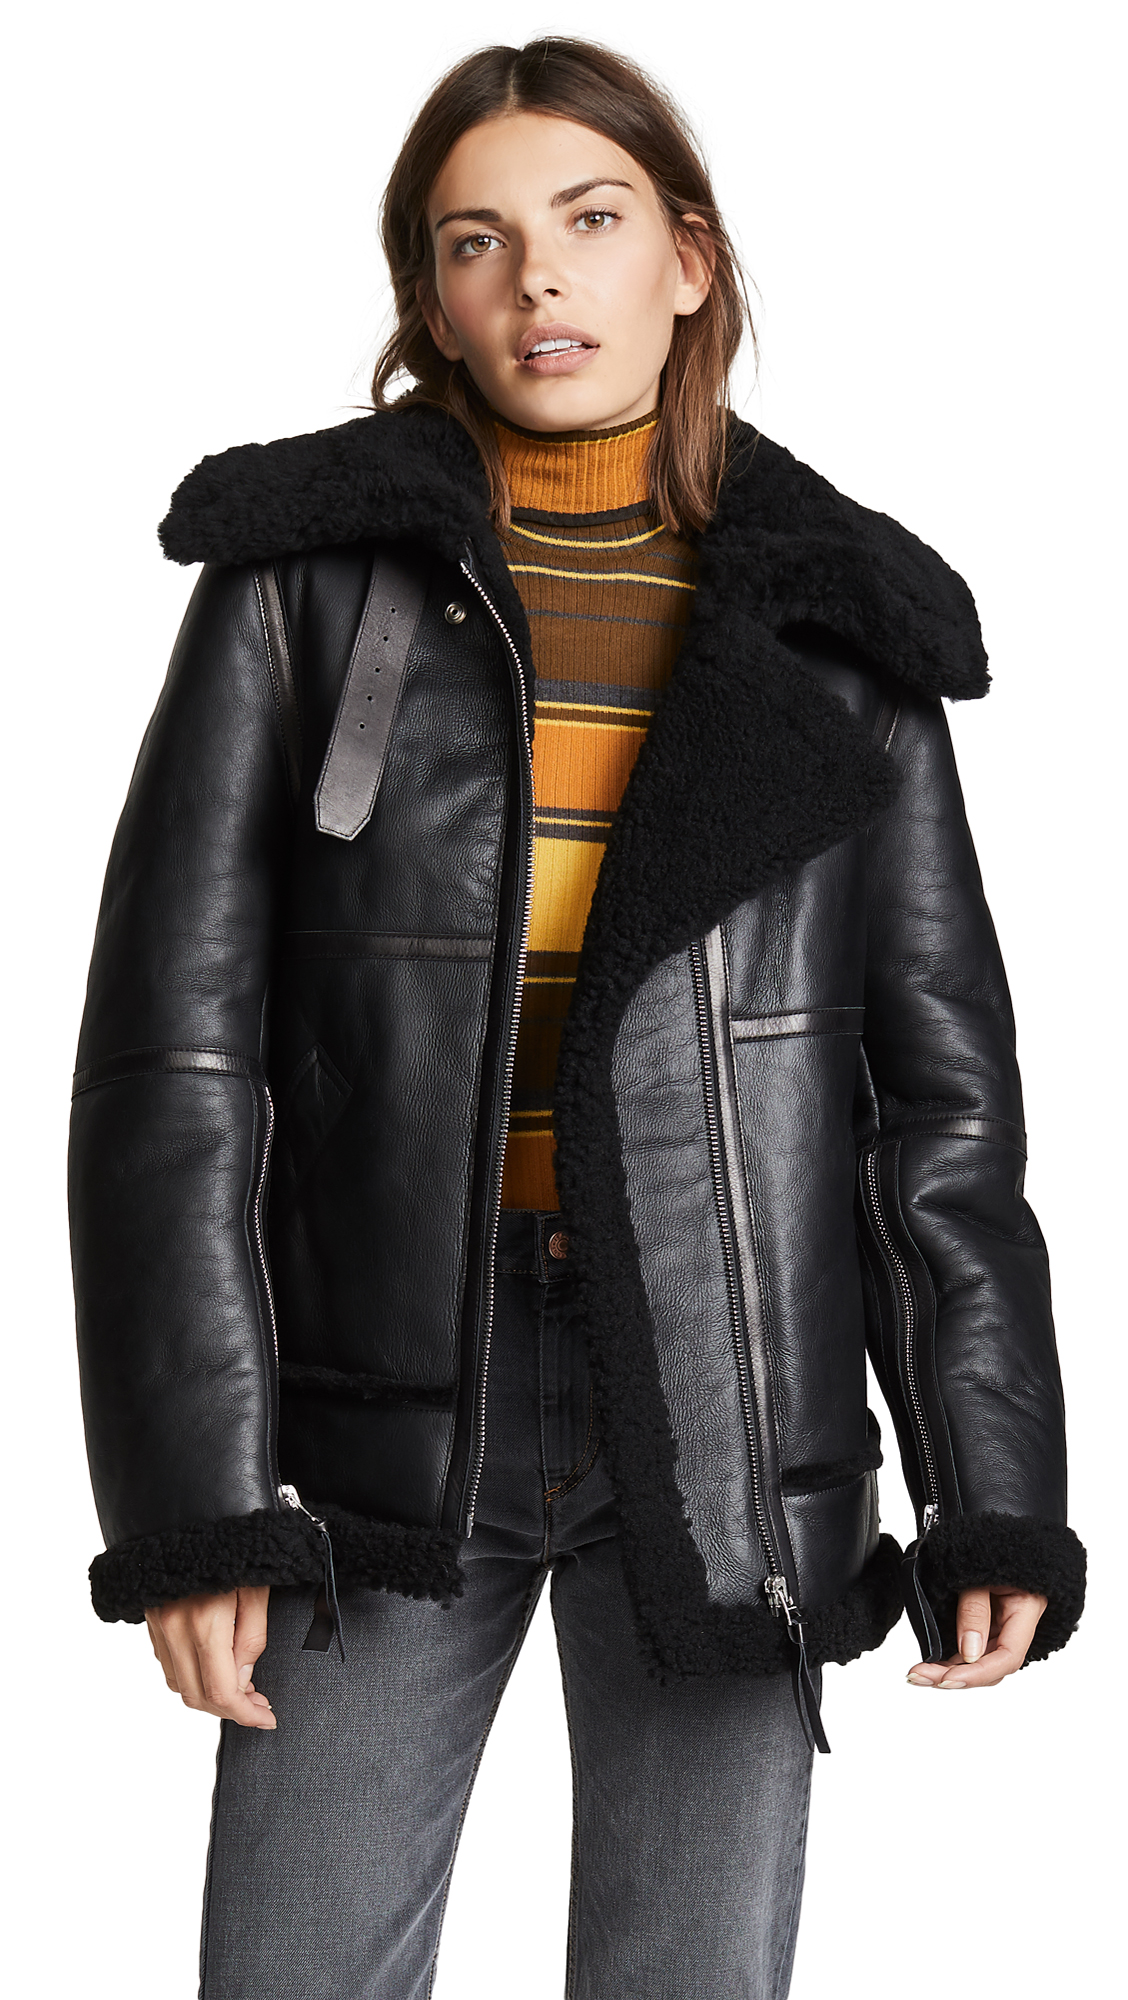 Acne Studios Shearling Leather Jacket In Black/Black